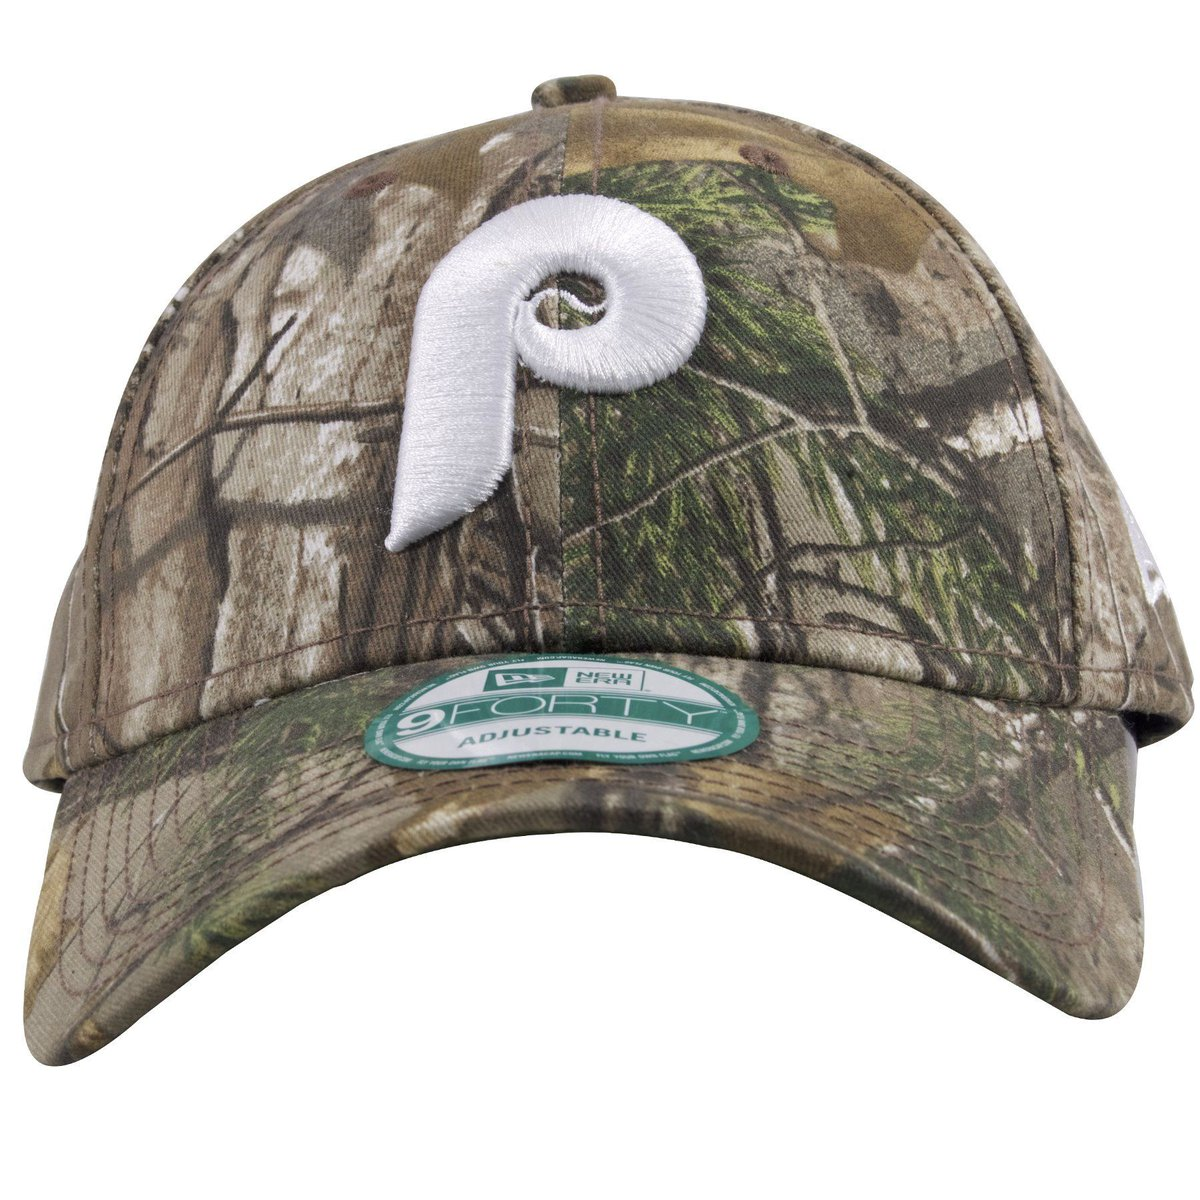 4ac55c4aad ... our online store to show your love for your favorite team!  #philadelphia #phillies #philly #realtree #camo #camouflage #mossyoak  #realtreecamo #hunting ...